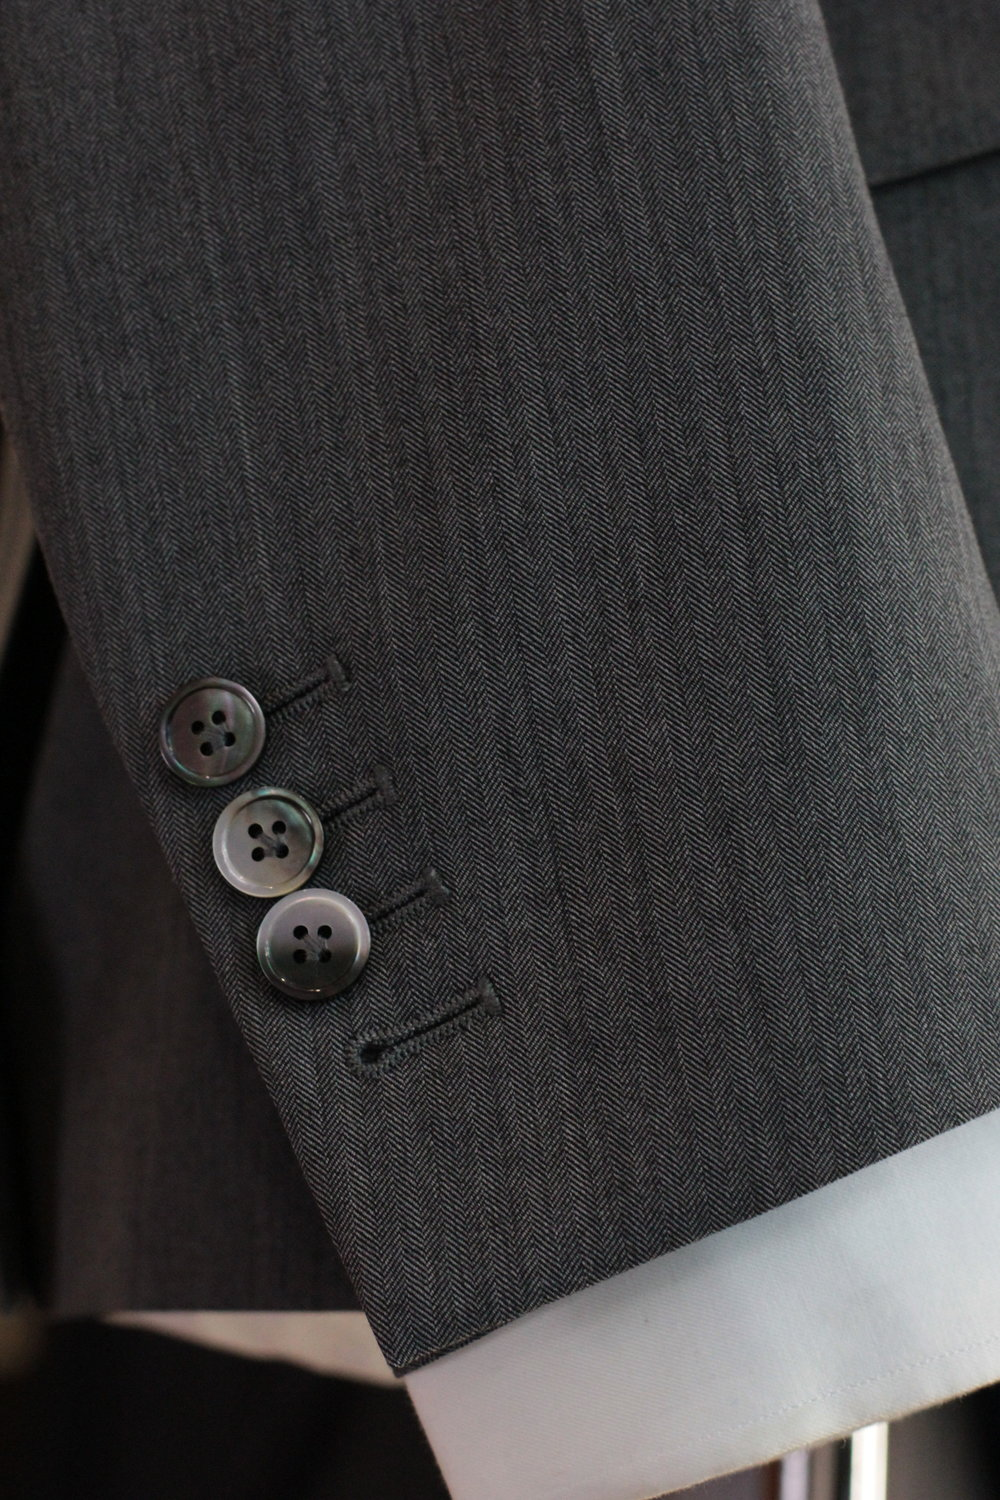 Functional Sleeve Button.